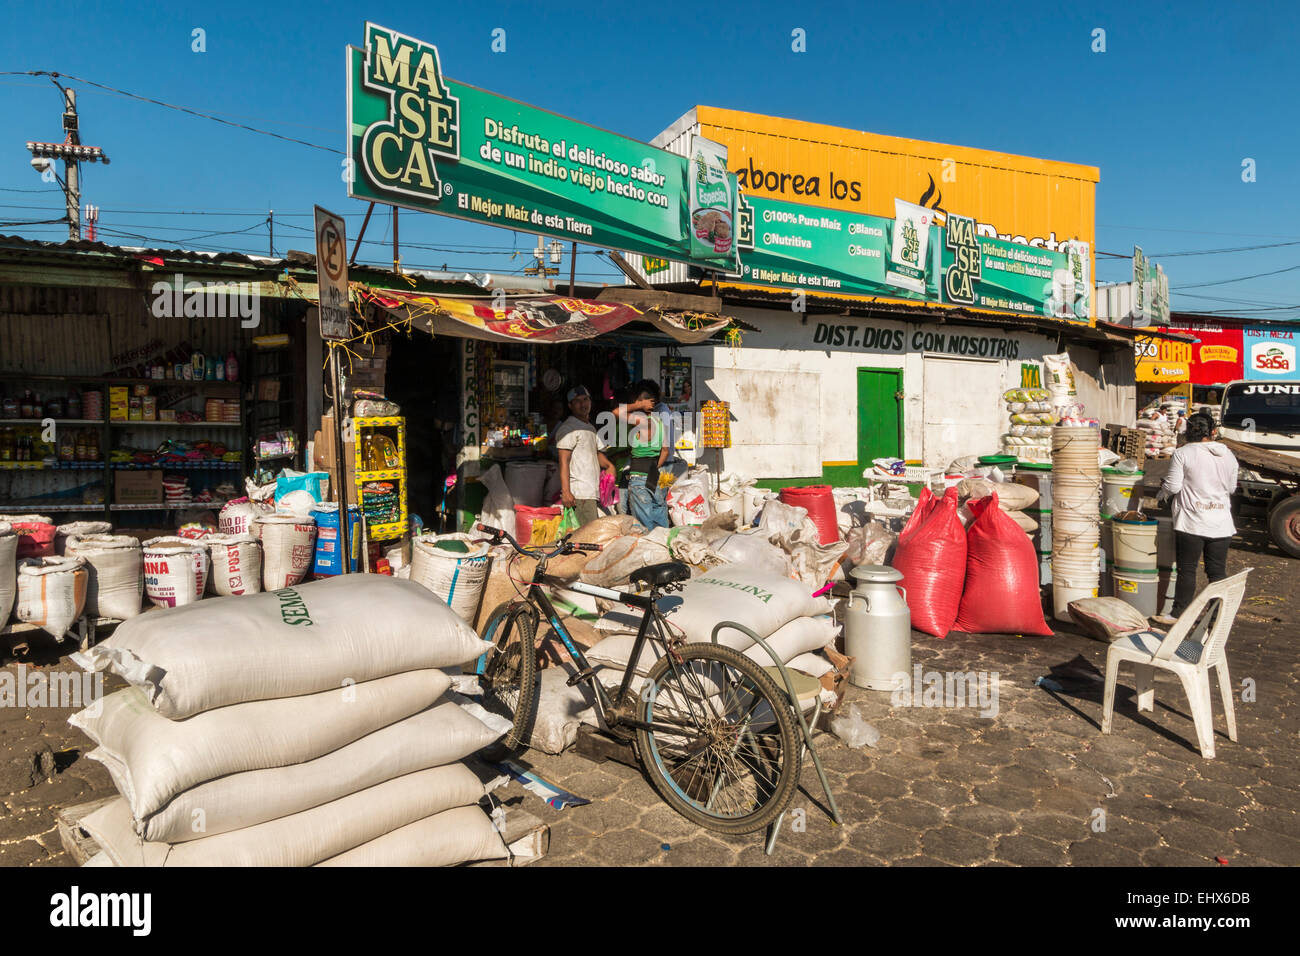 Sacks of semolina in the market place of this important north western city Leon; Leon, Nicaragua - Stock Image